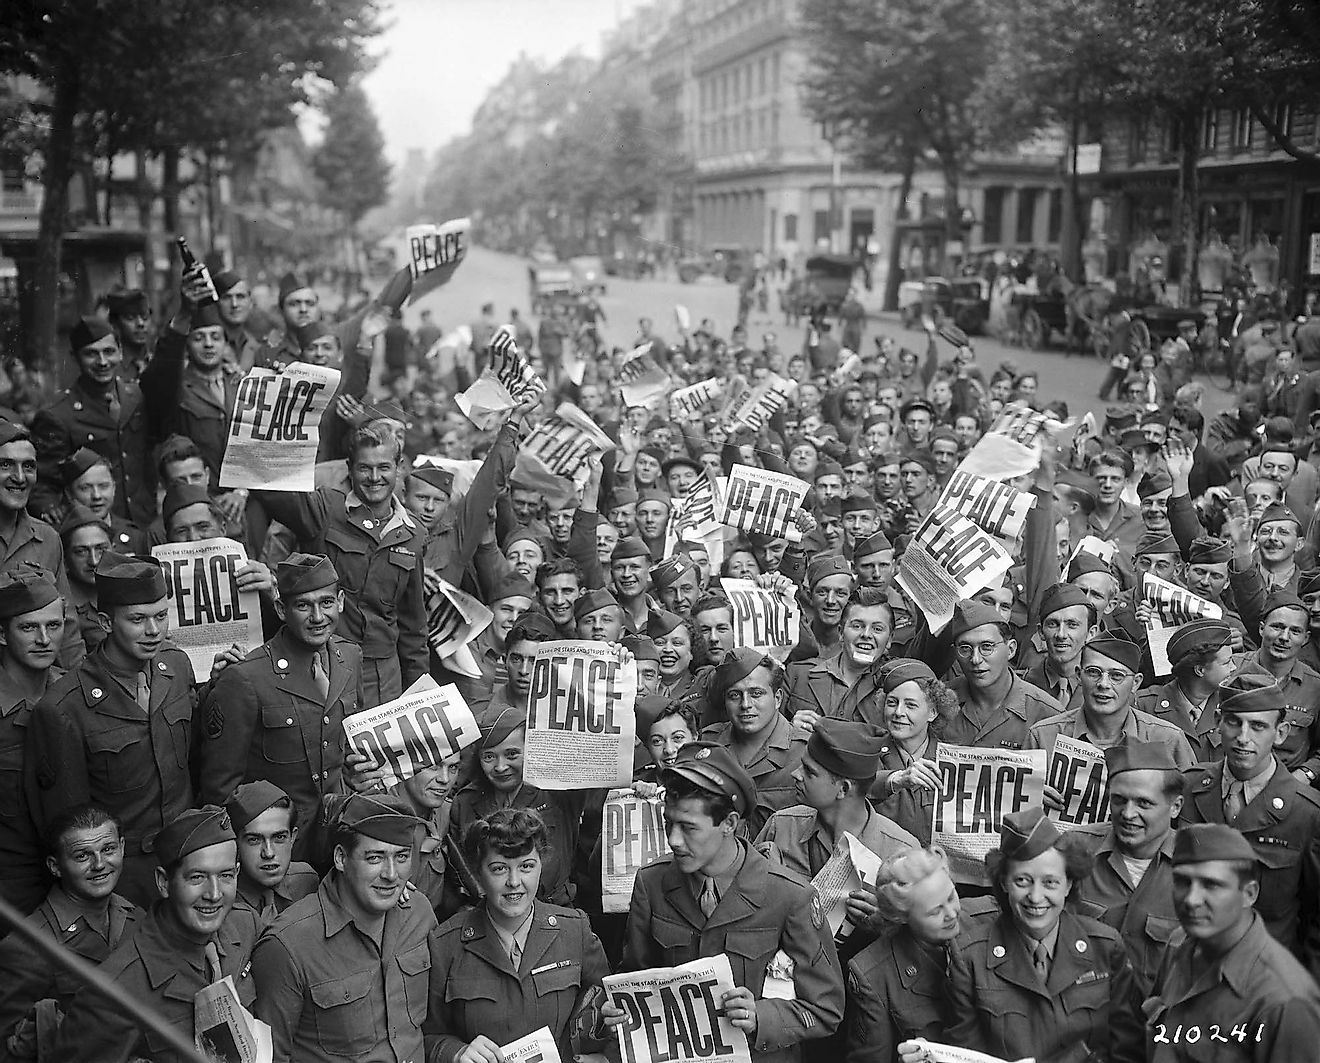 Soldiers of the Allied front celebrate their victory in Paris, France post World War II.